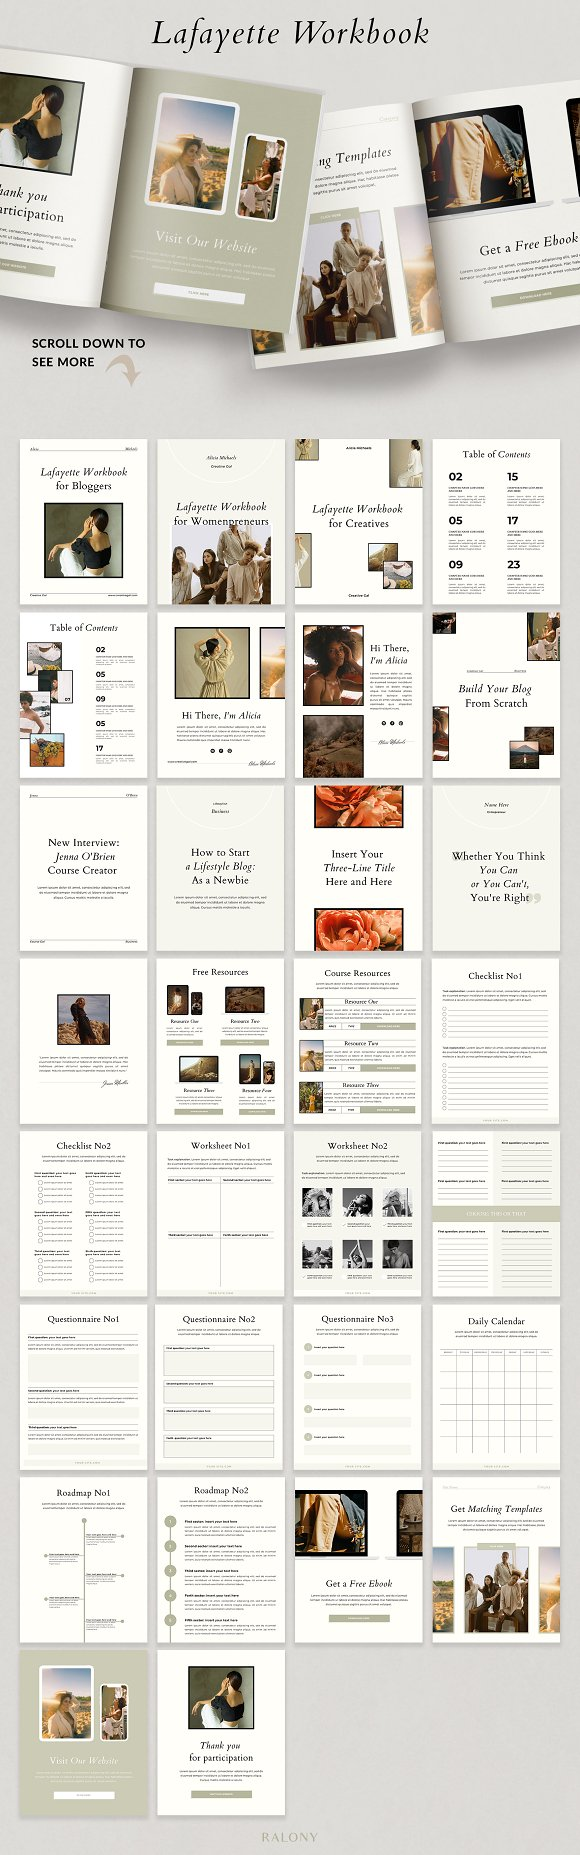 Course Creator Workbook | Lafayette in Magazine Templates - product preview 11